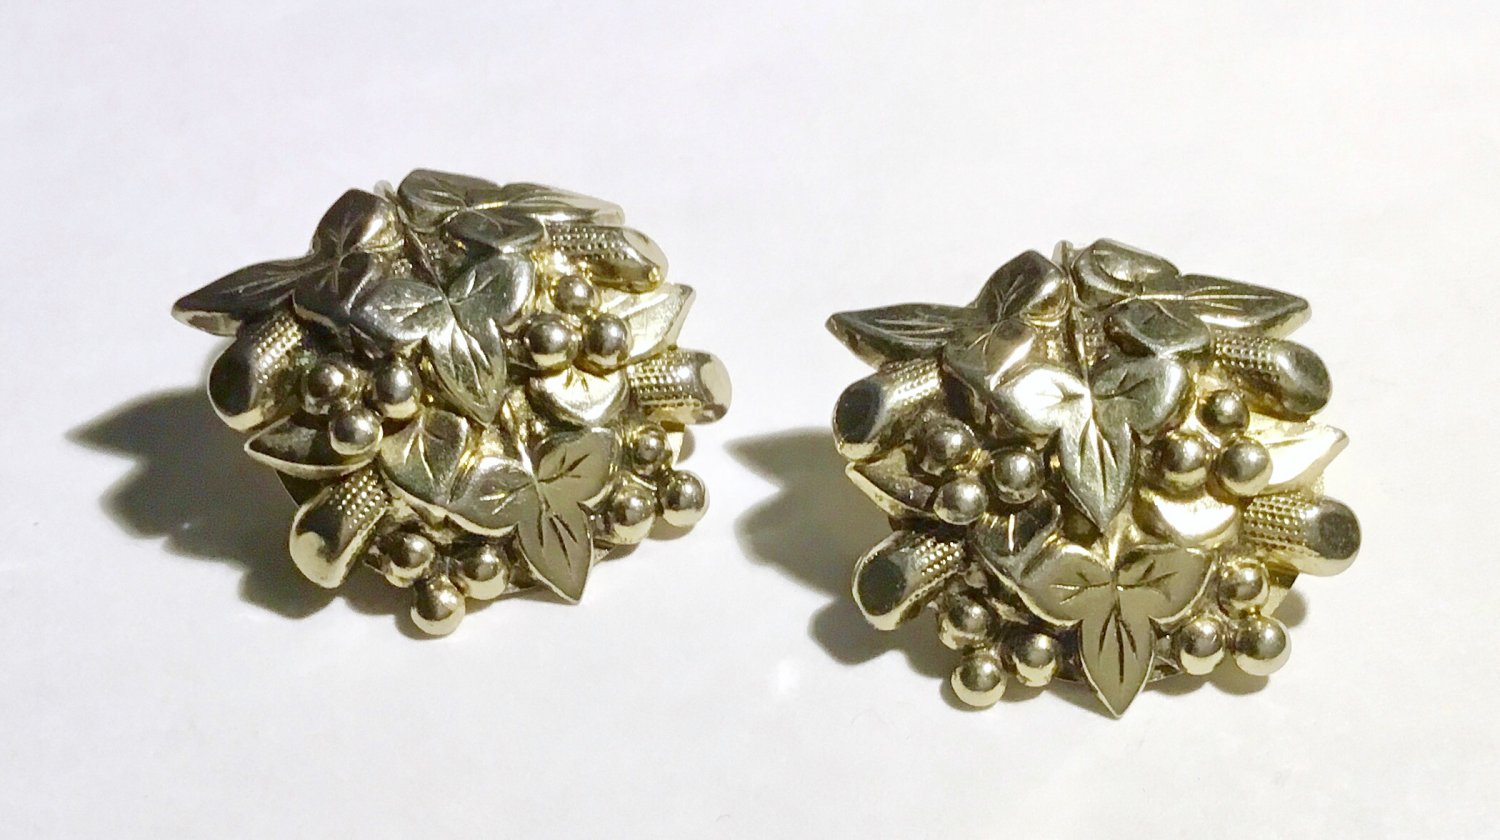 Vintage Eastlake Inspired Victorian Revival 1950s Clip Earrings - Free USA Shipping